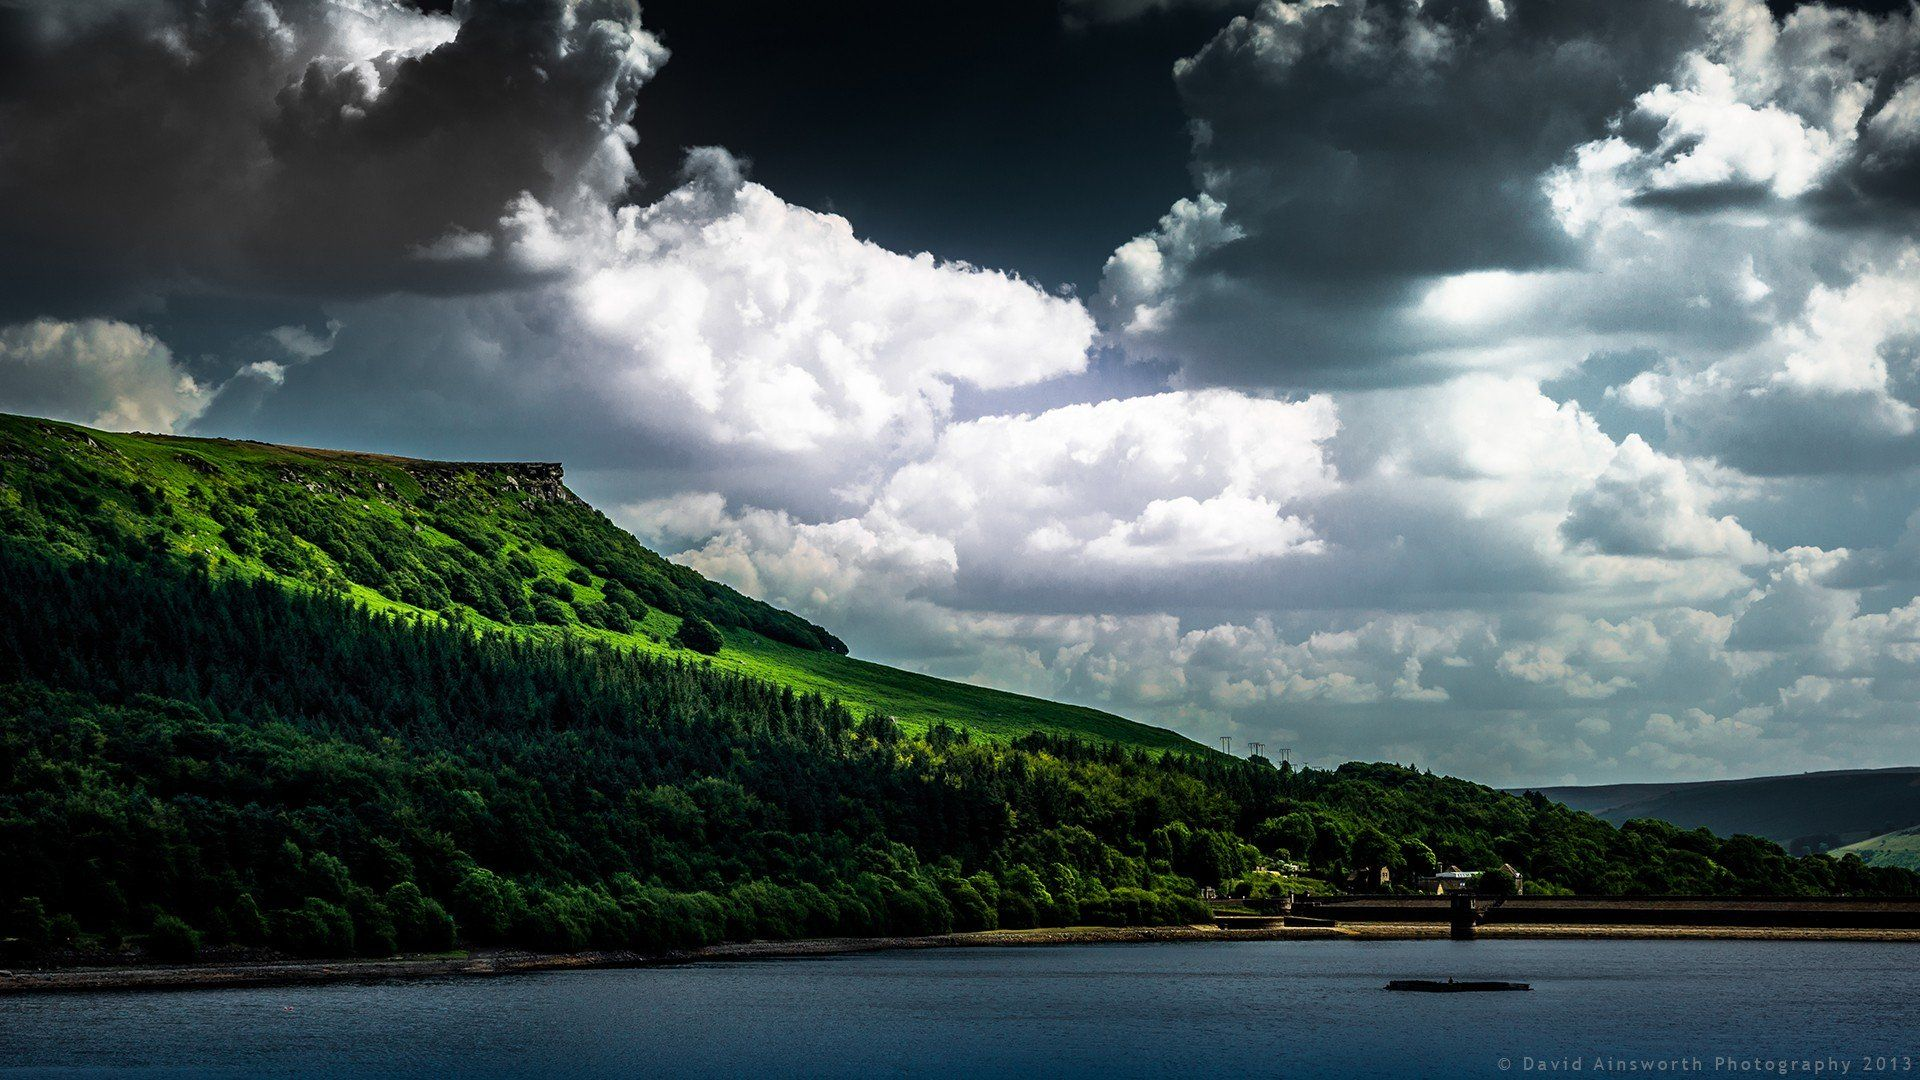 mountain, Nature, Landscape, Cloud, Lake, Tree, Reflection, River